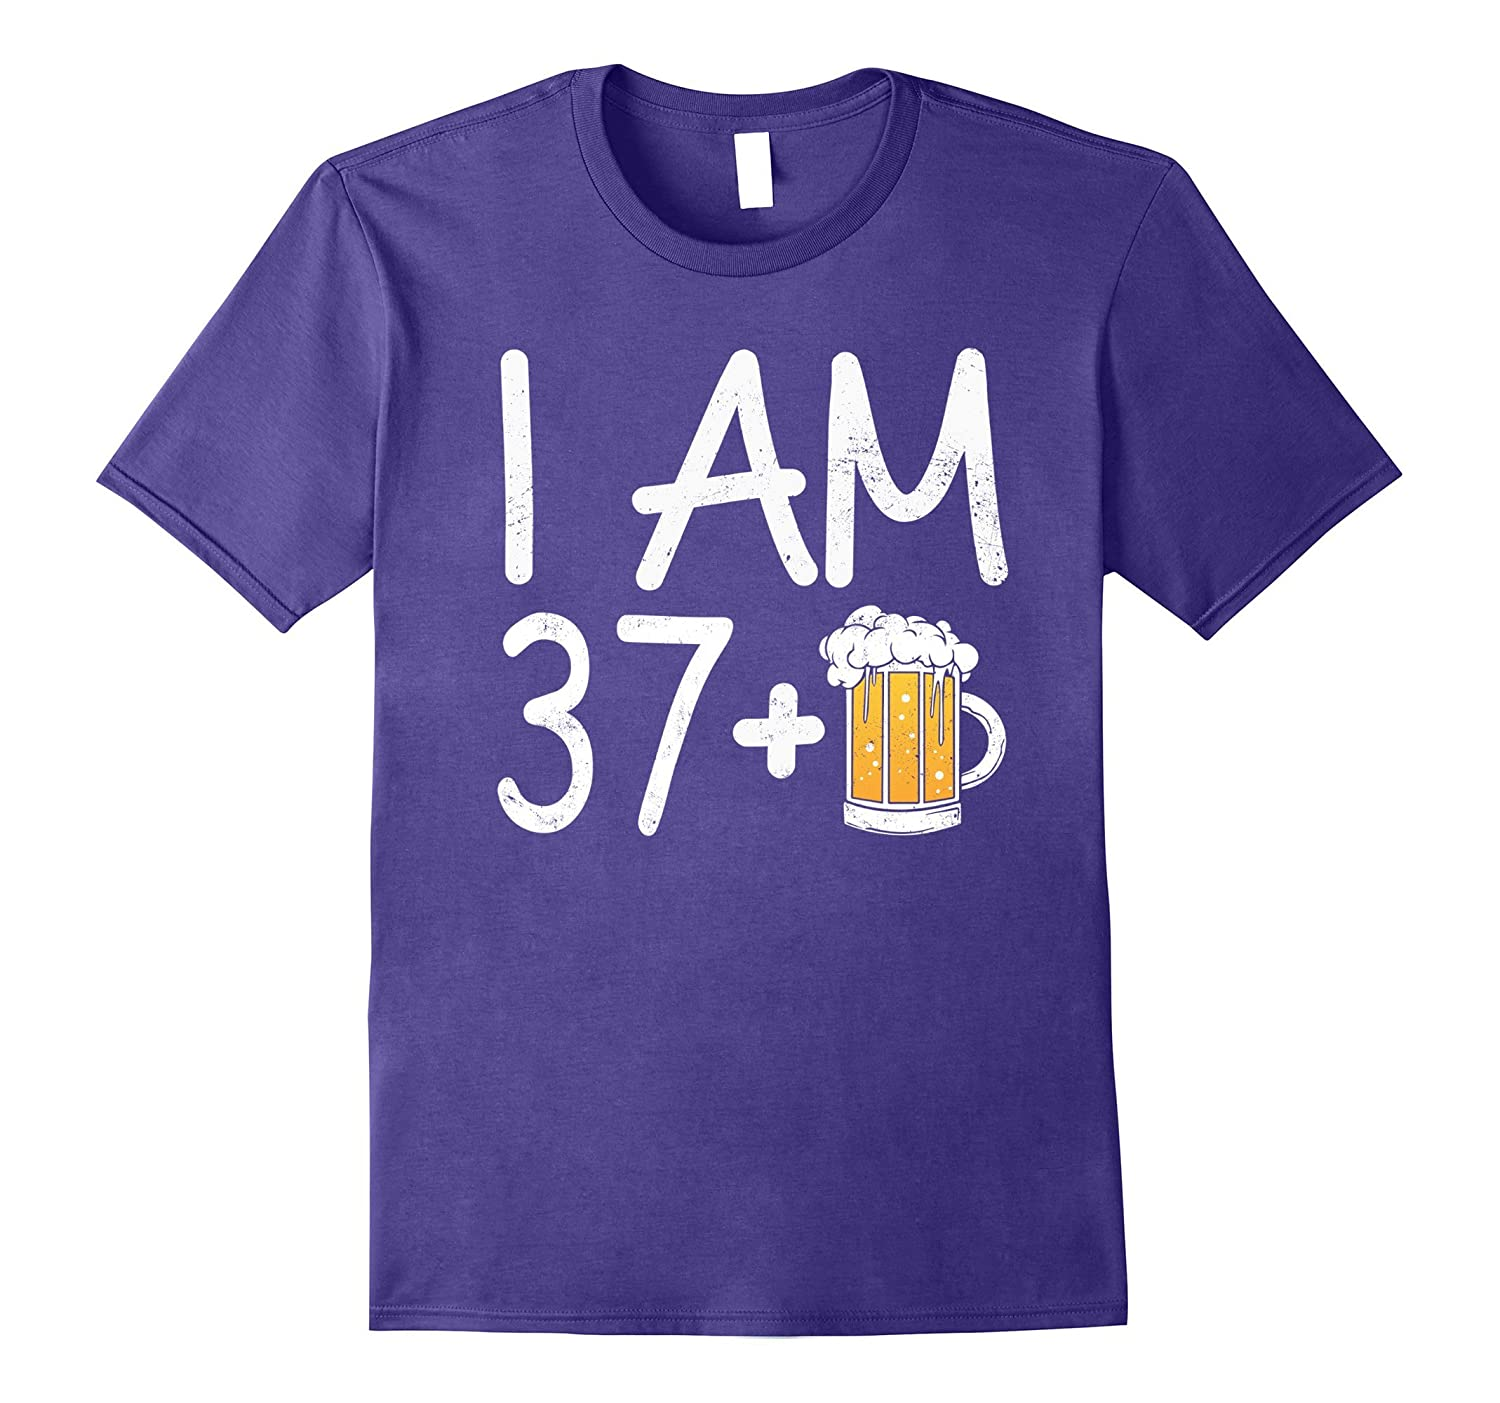 37th Birthday Born In 1980 T-Shirt Im 37 Years Old-PL